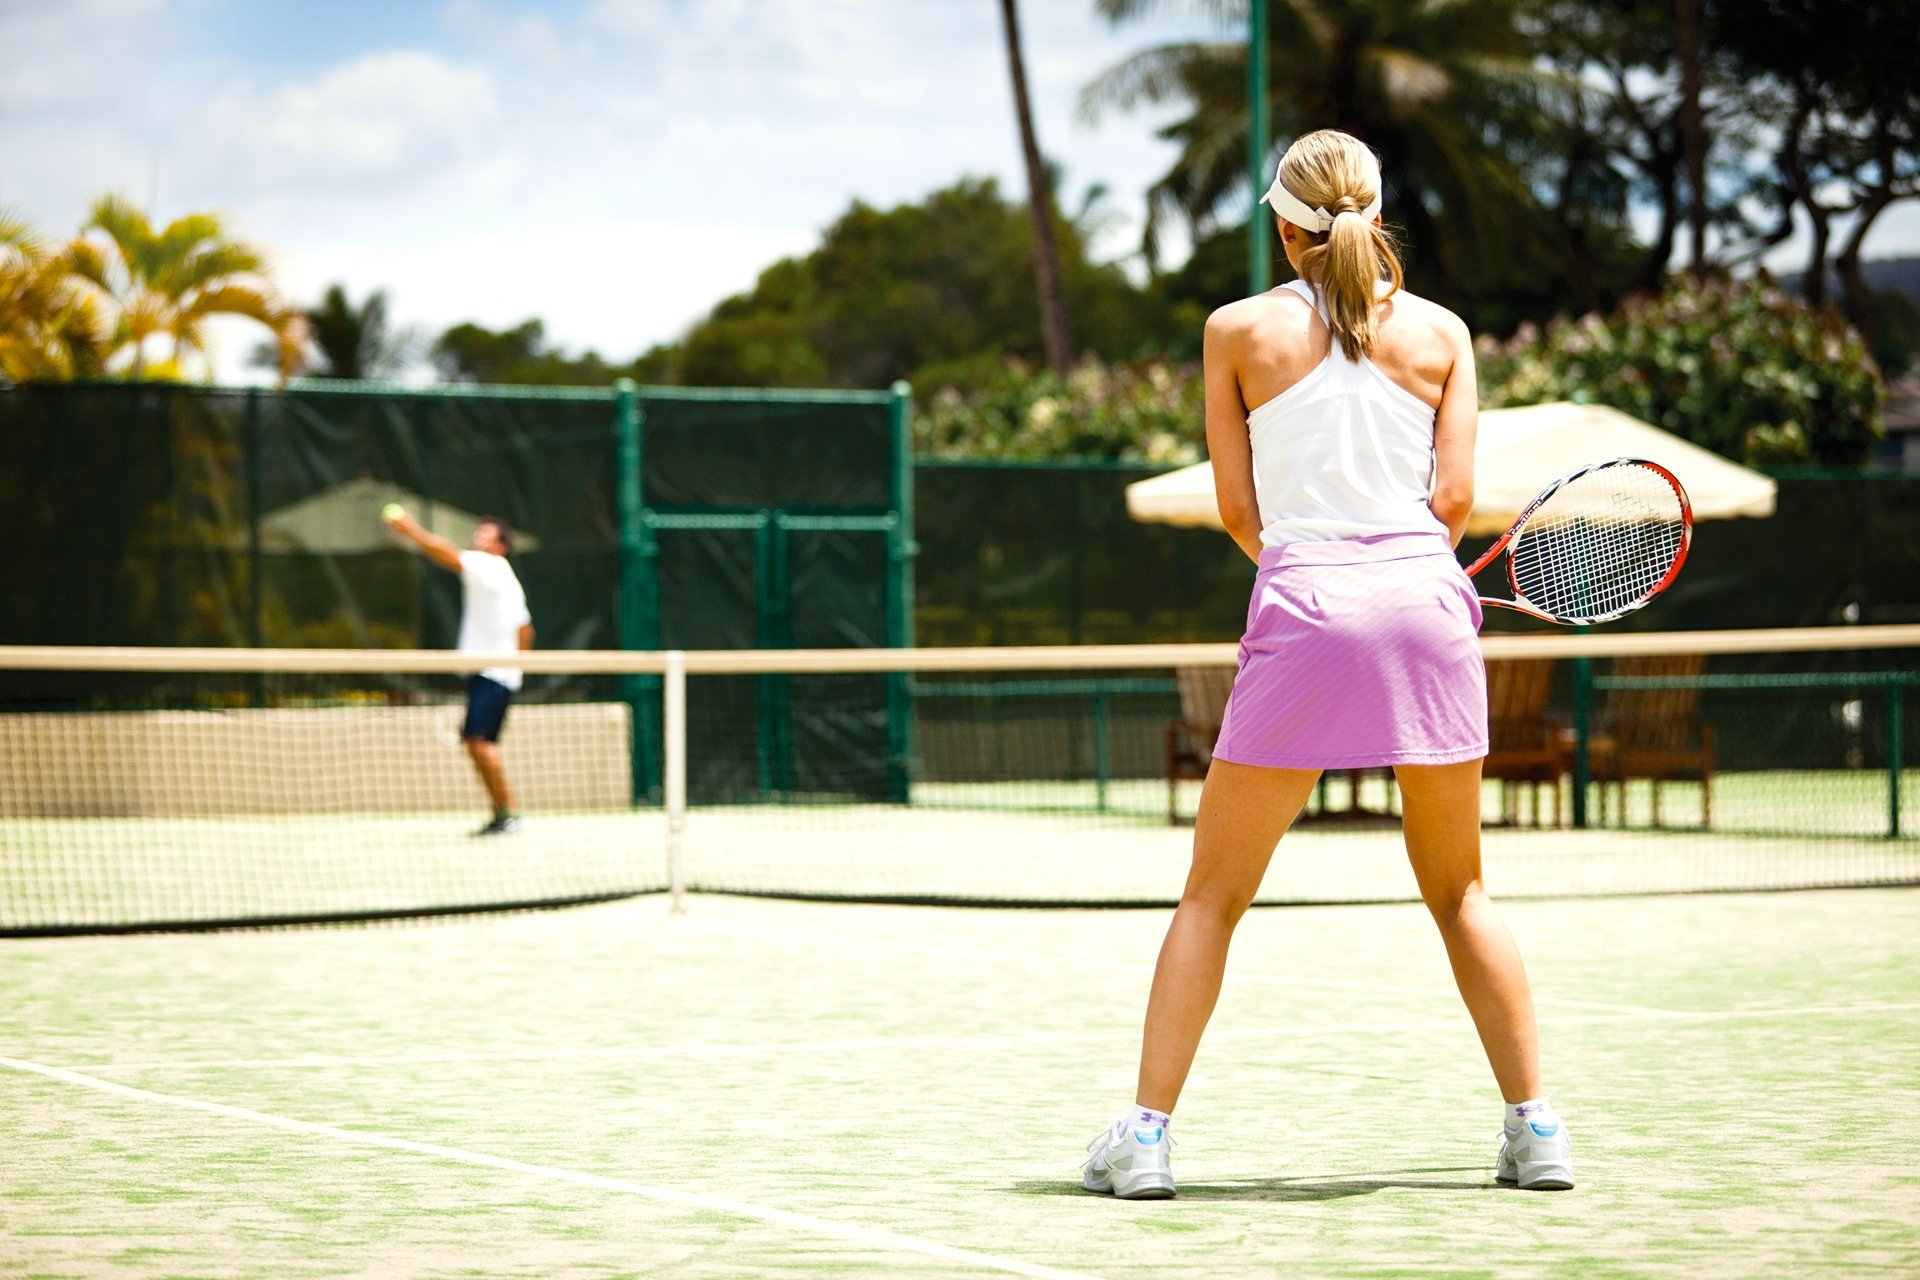 tennis-tourist-courtesy-four-seasons-maui-Woman-playing-tennis